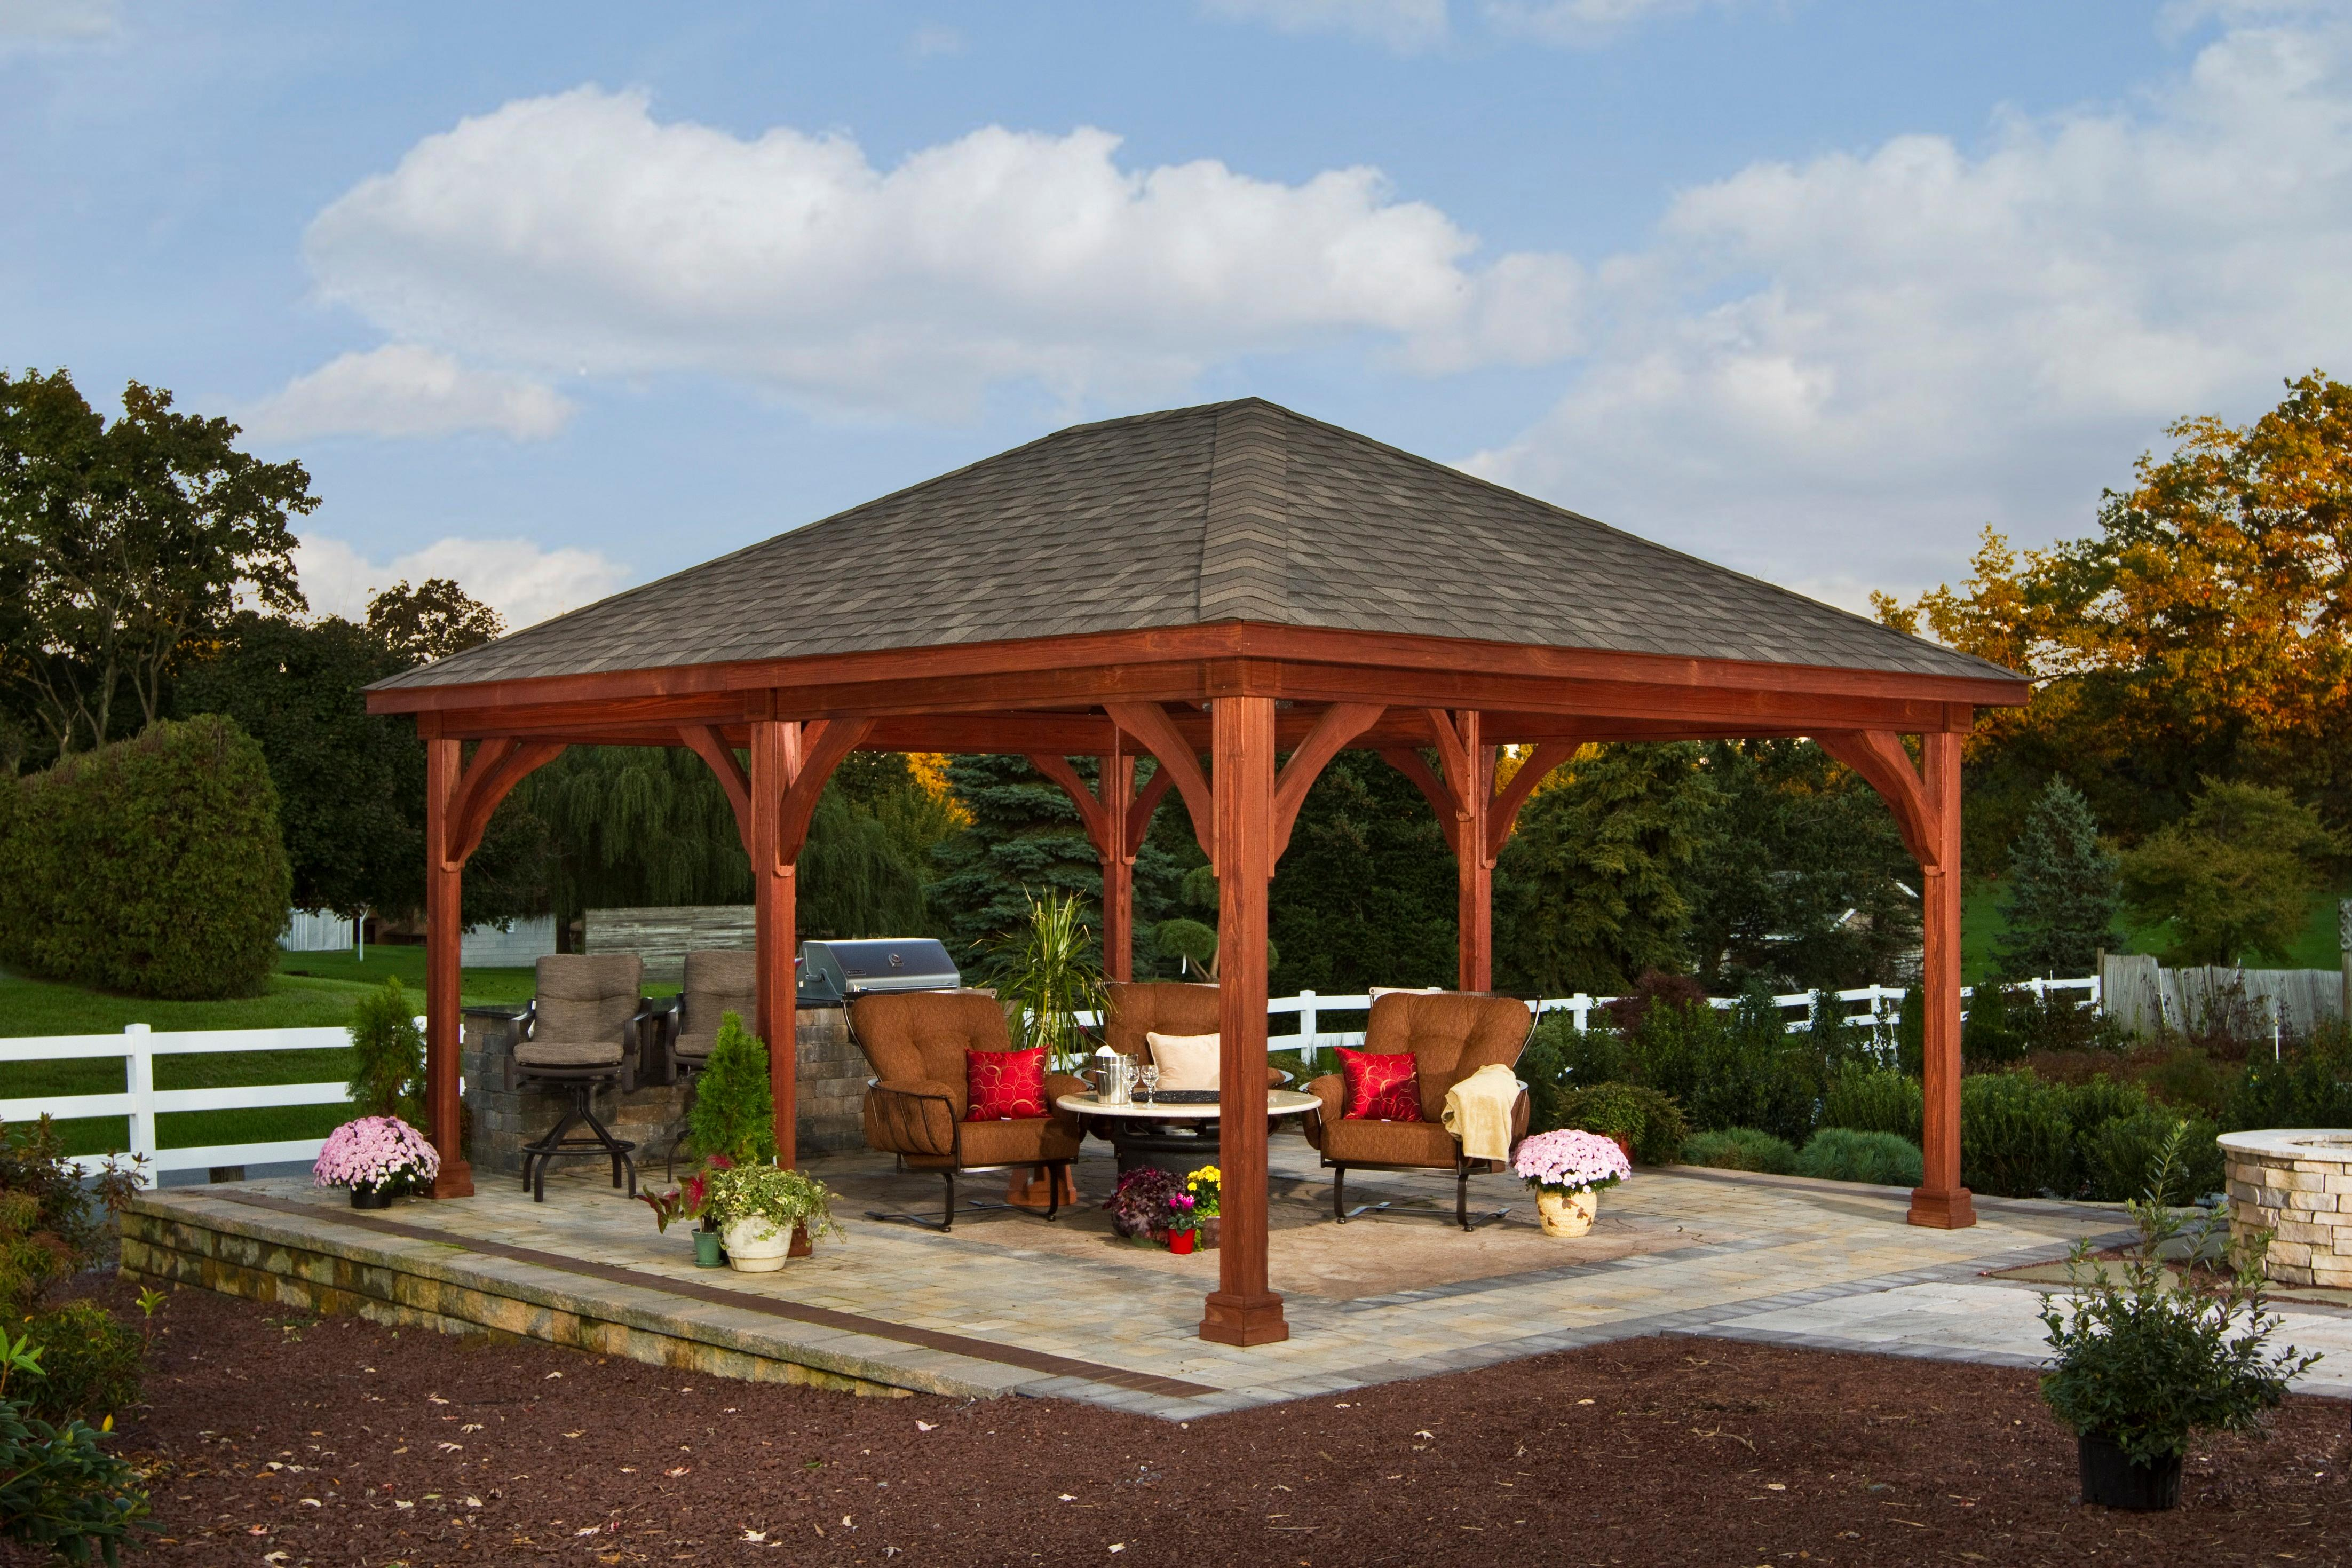 Outdoor Living and Play image 16